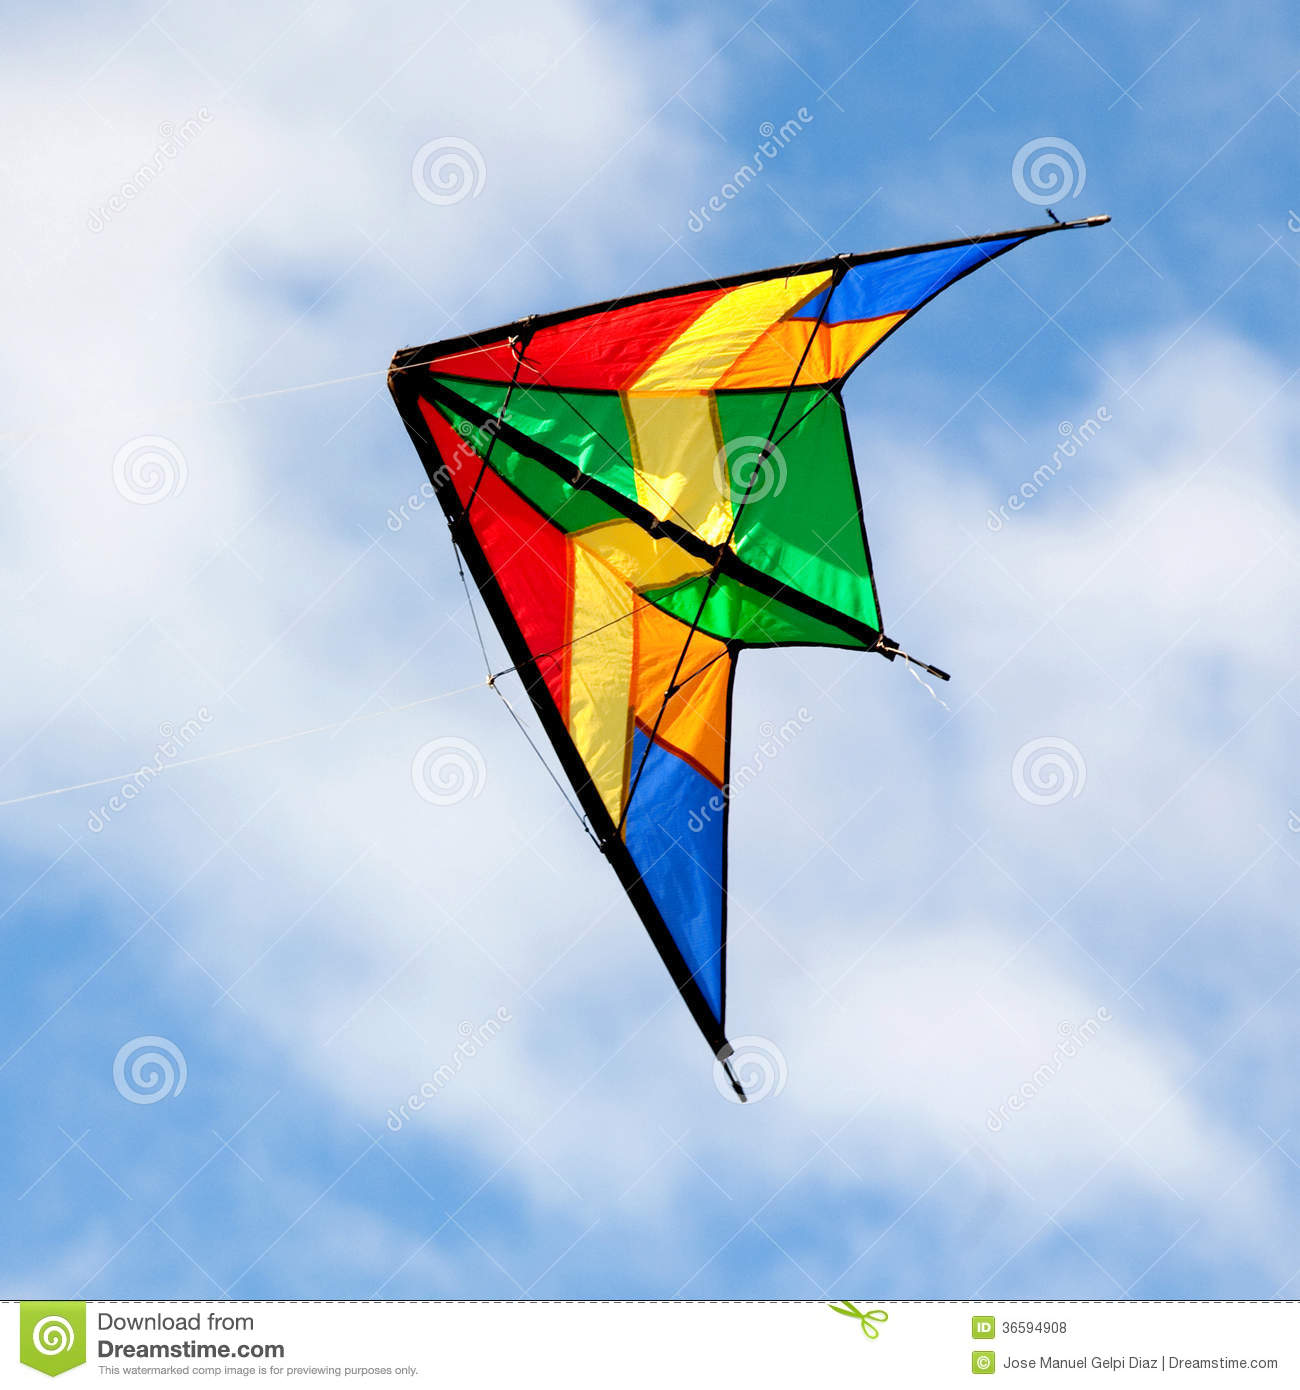 Nice Kite Flying Over Blue Sky Royalty Free Stock Photos ...